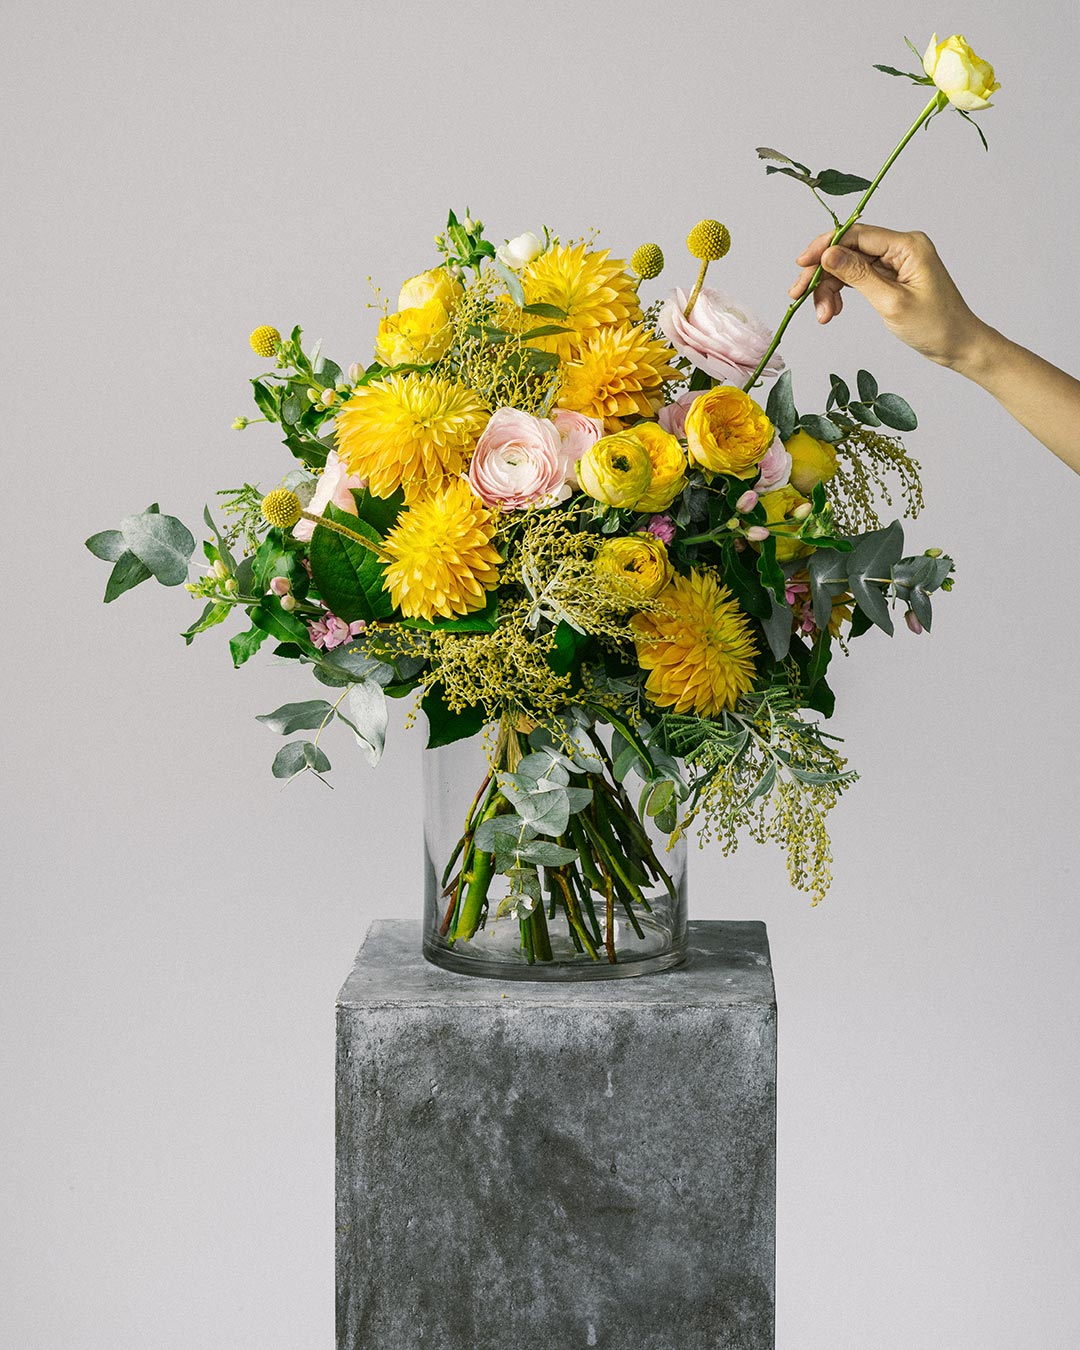 Banner image of florist arranging yellow ranunculus flower bouquet for the bespoke collection